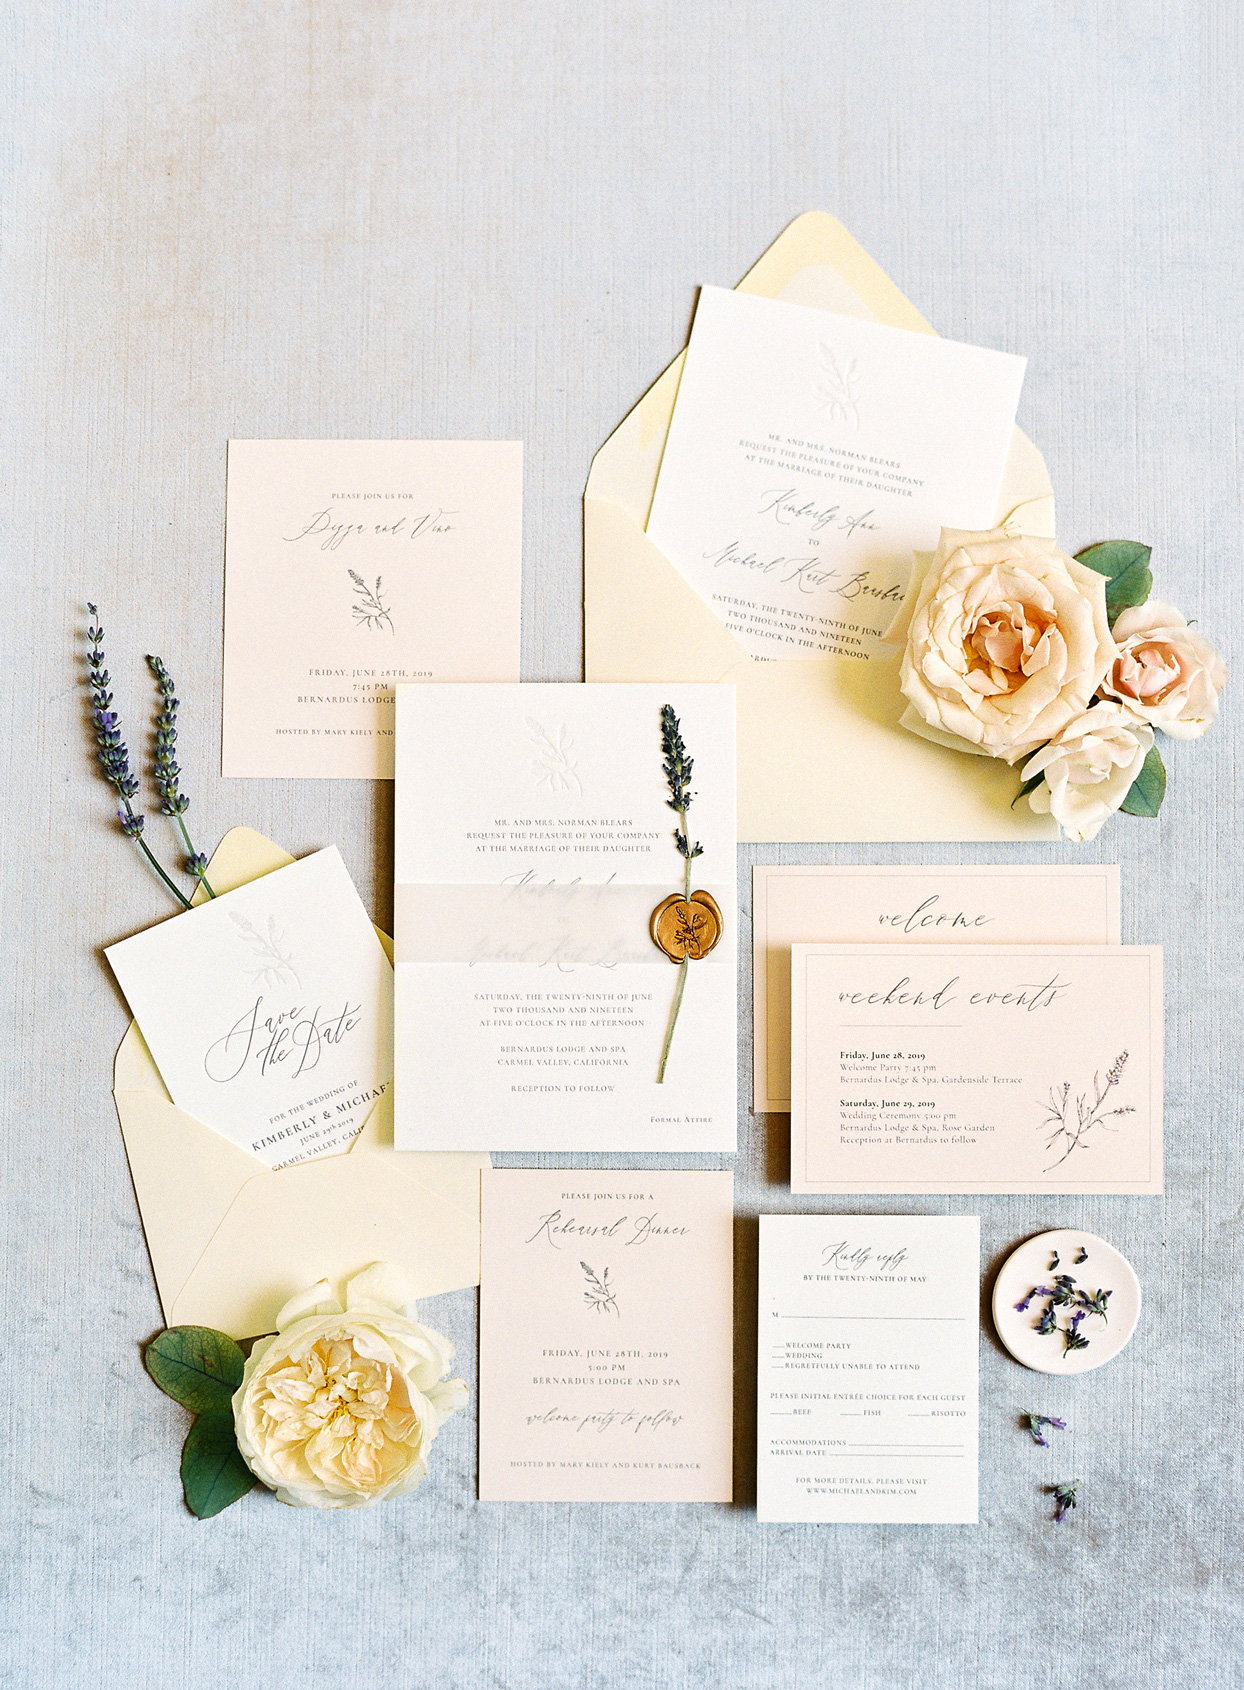 white and cream color themed wedding invitations